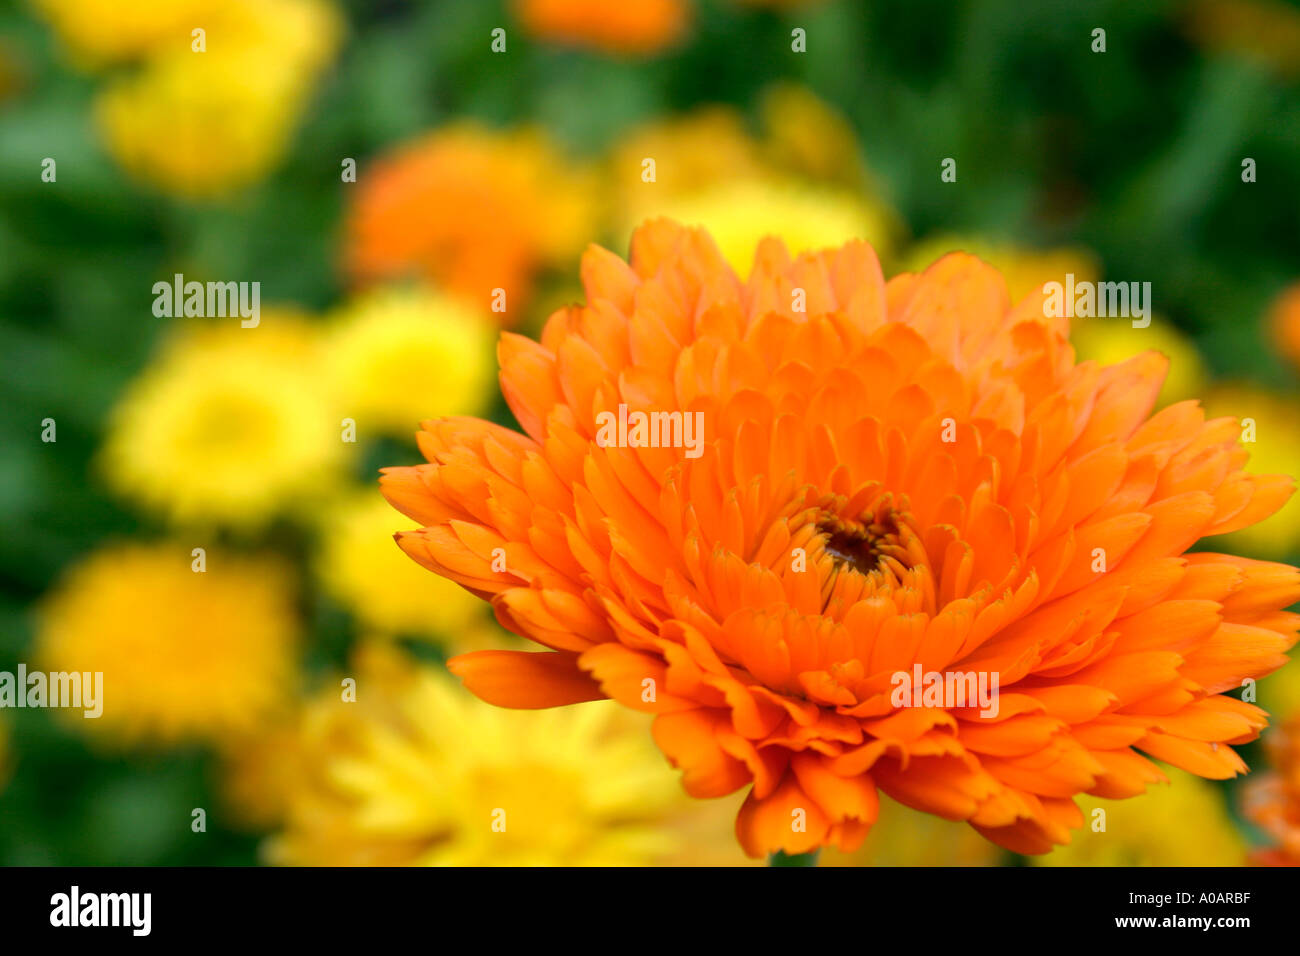 Orange And Yellow Flowers Of Summer Flowering Annual Garden Plant